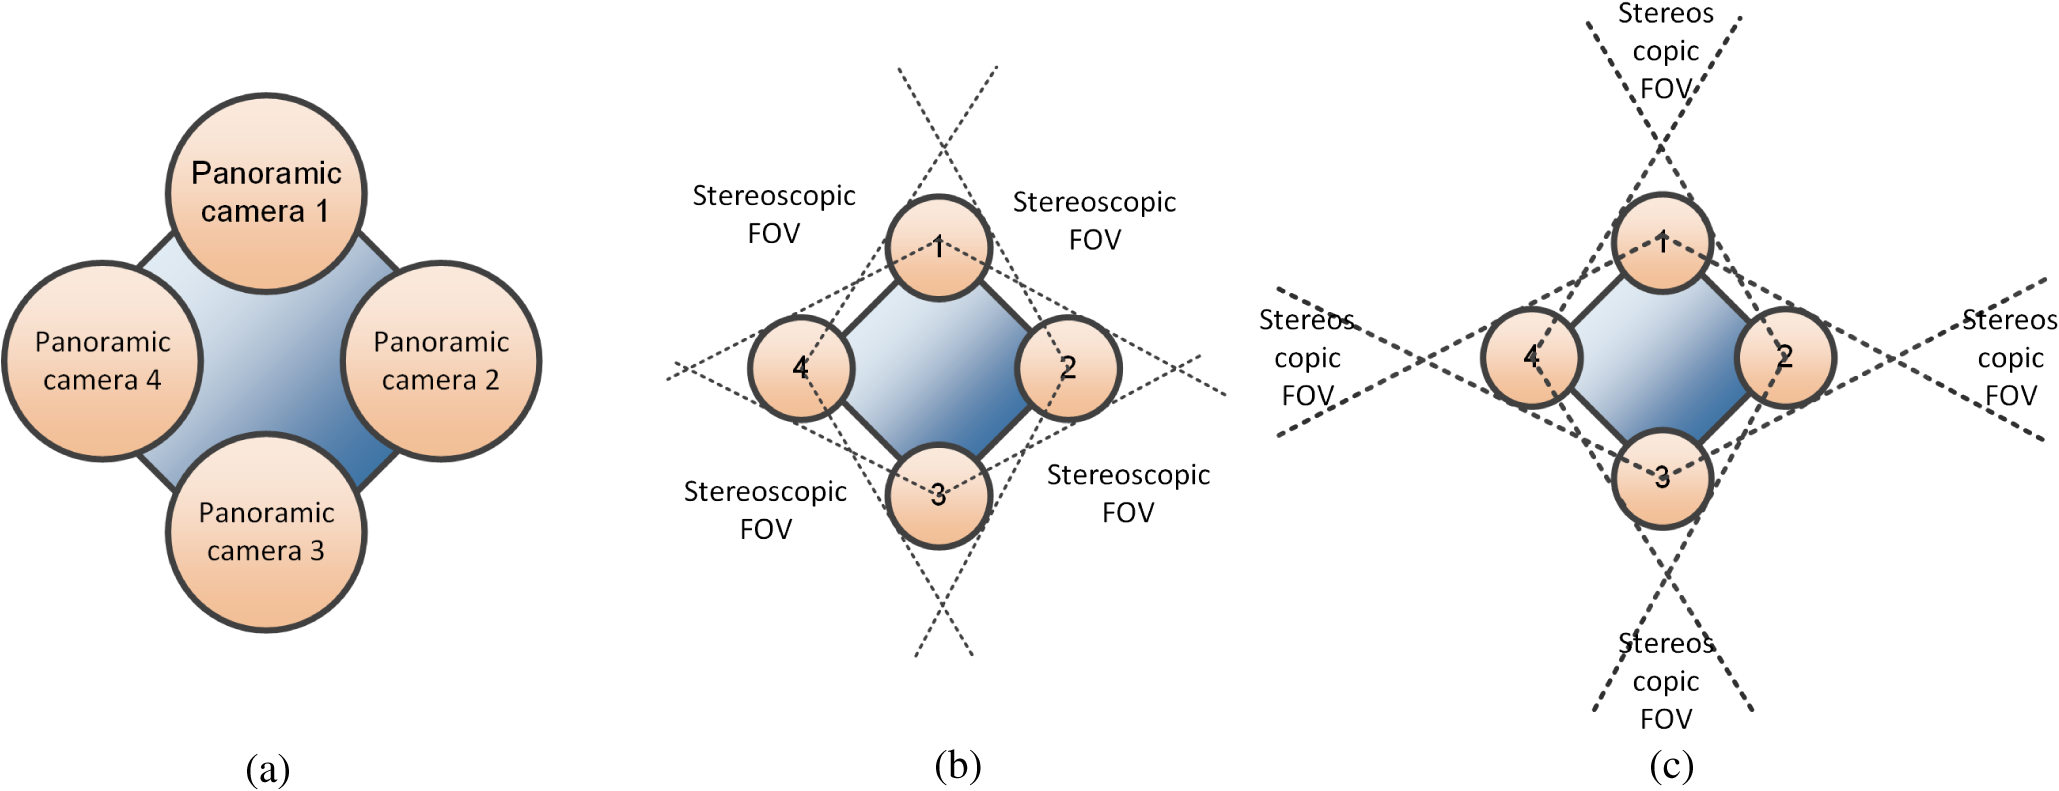 Acquisition Of Omnidirectional Stereoscopic Images And Videos Camera Diagram Labeled Related Keywords C Alternative With A Slightly Larger Baseline But Where The Regions For Rendering Are Farther From